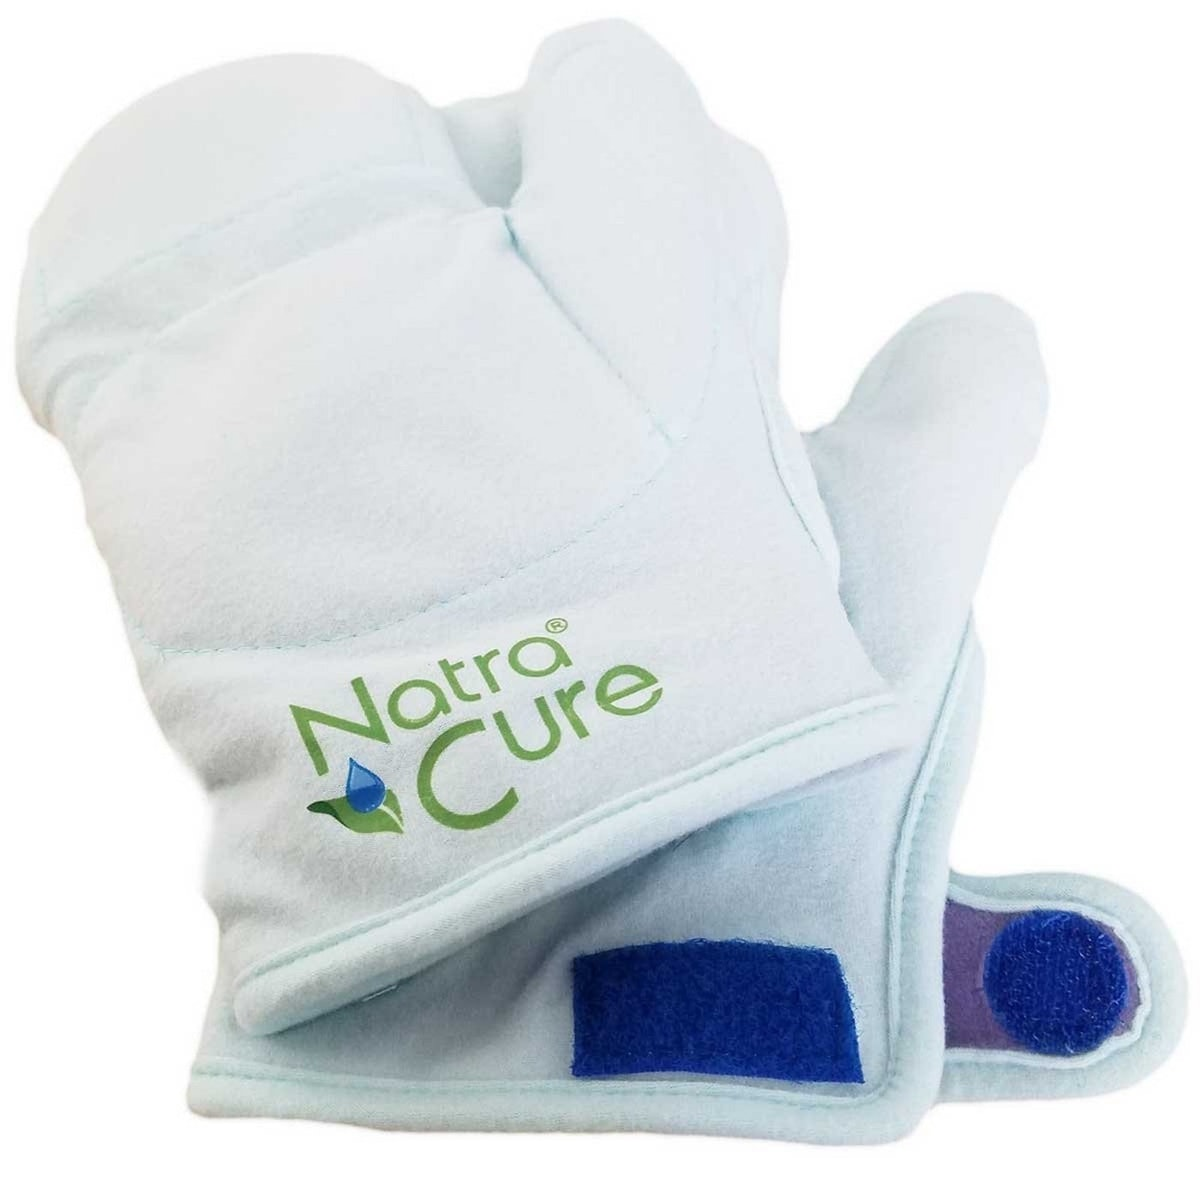 NatraCure Heat Therapy Mittens